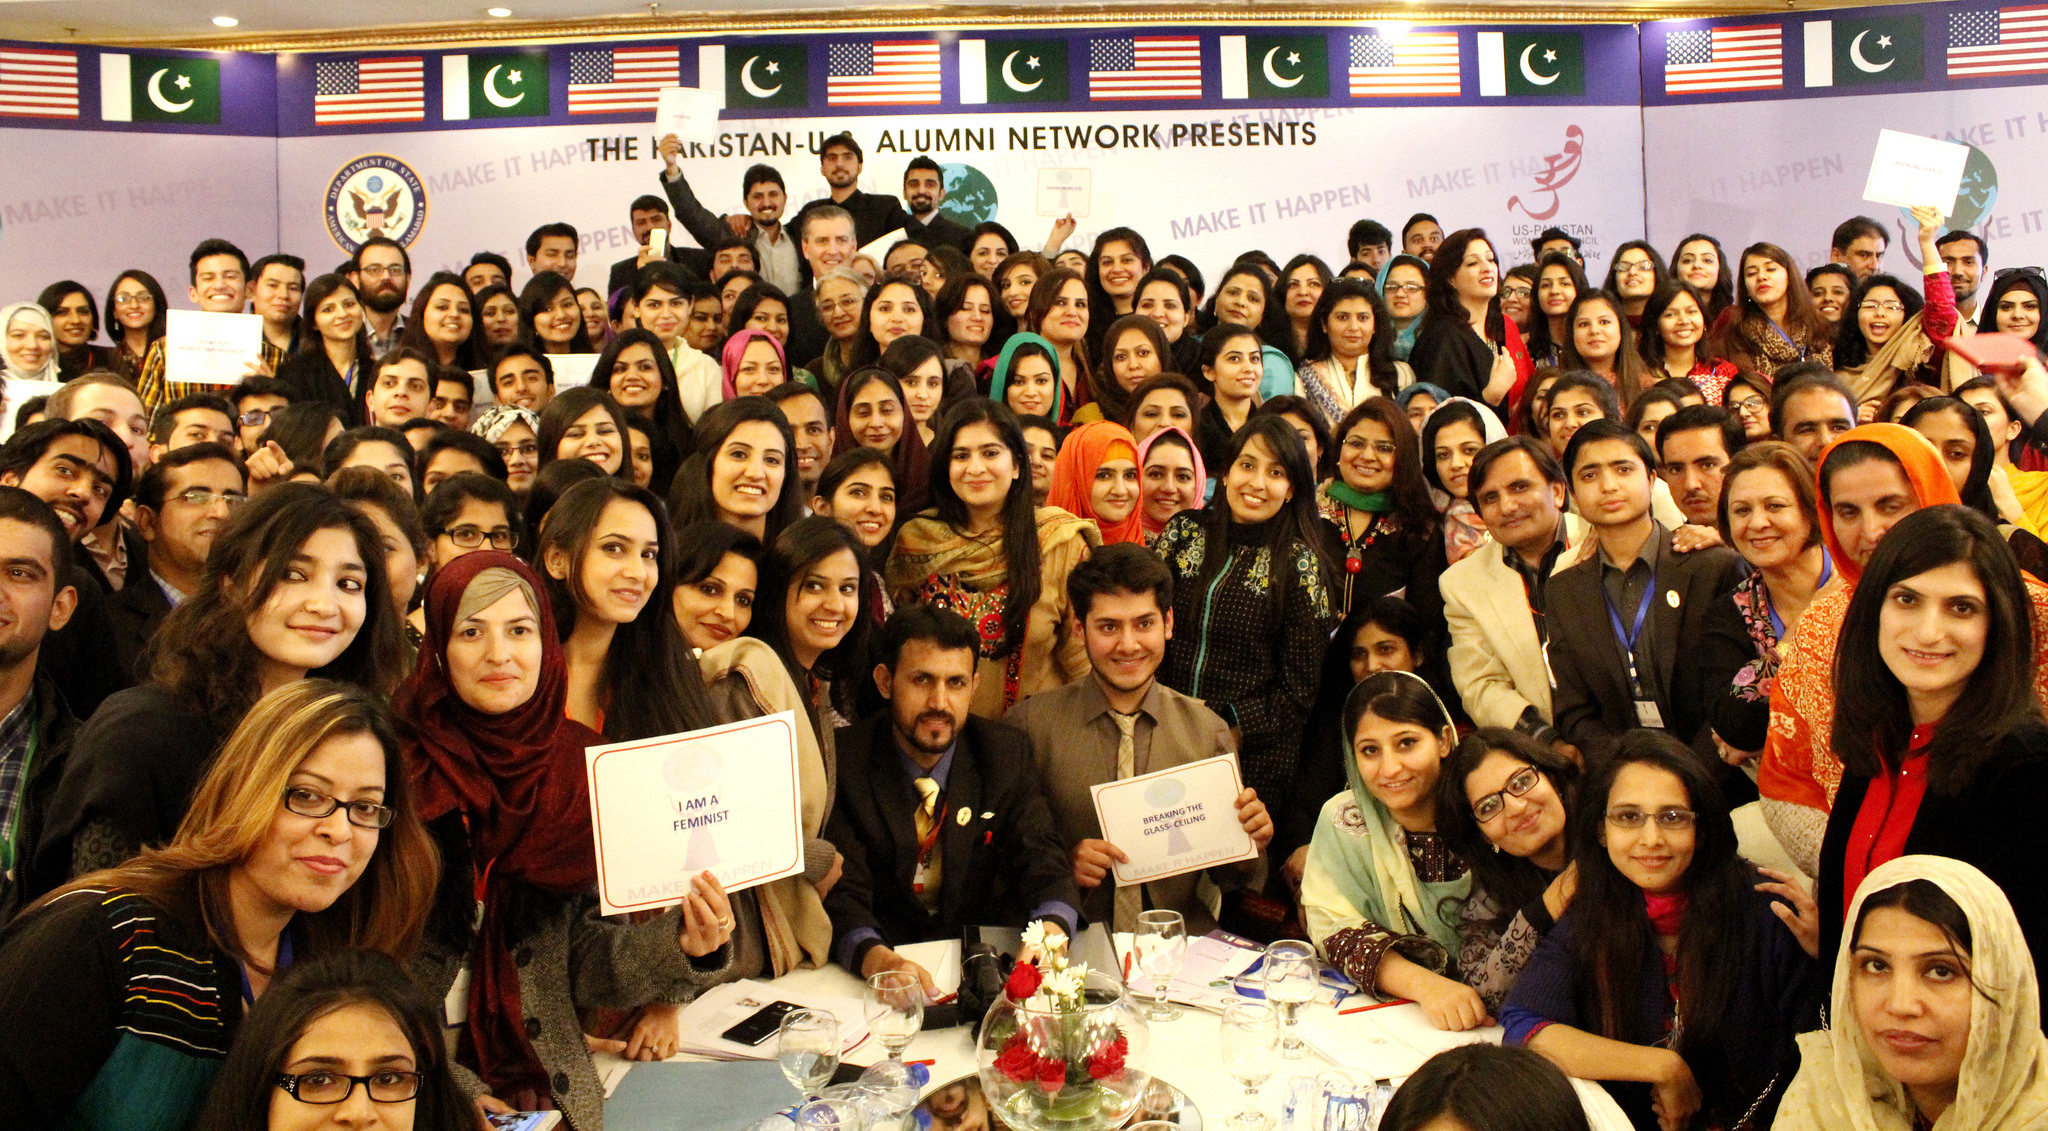 Ambassador Olson poses with hundreds of alumni at the opening ceremony of the 2015 International Women's Empowerment Conference in Islamabad, Pakistan.